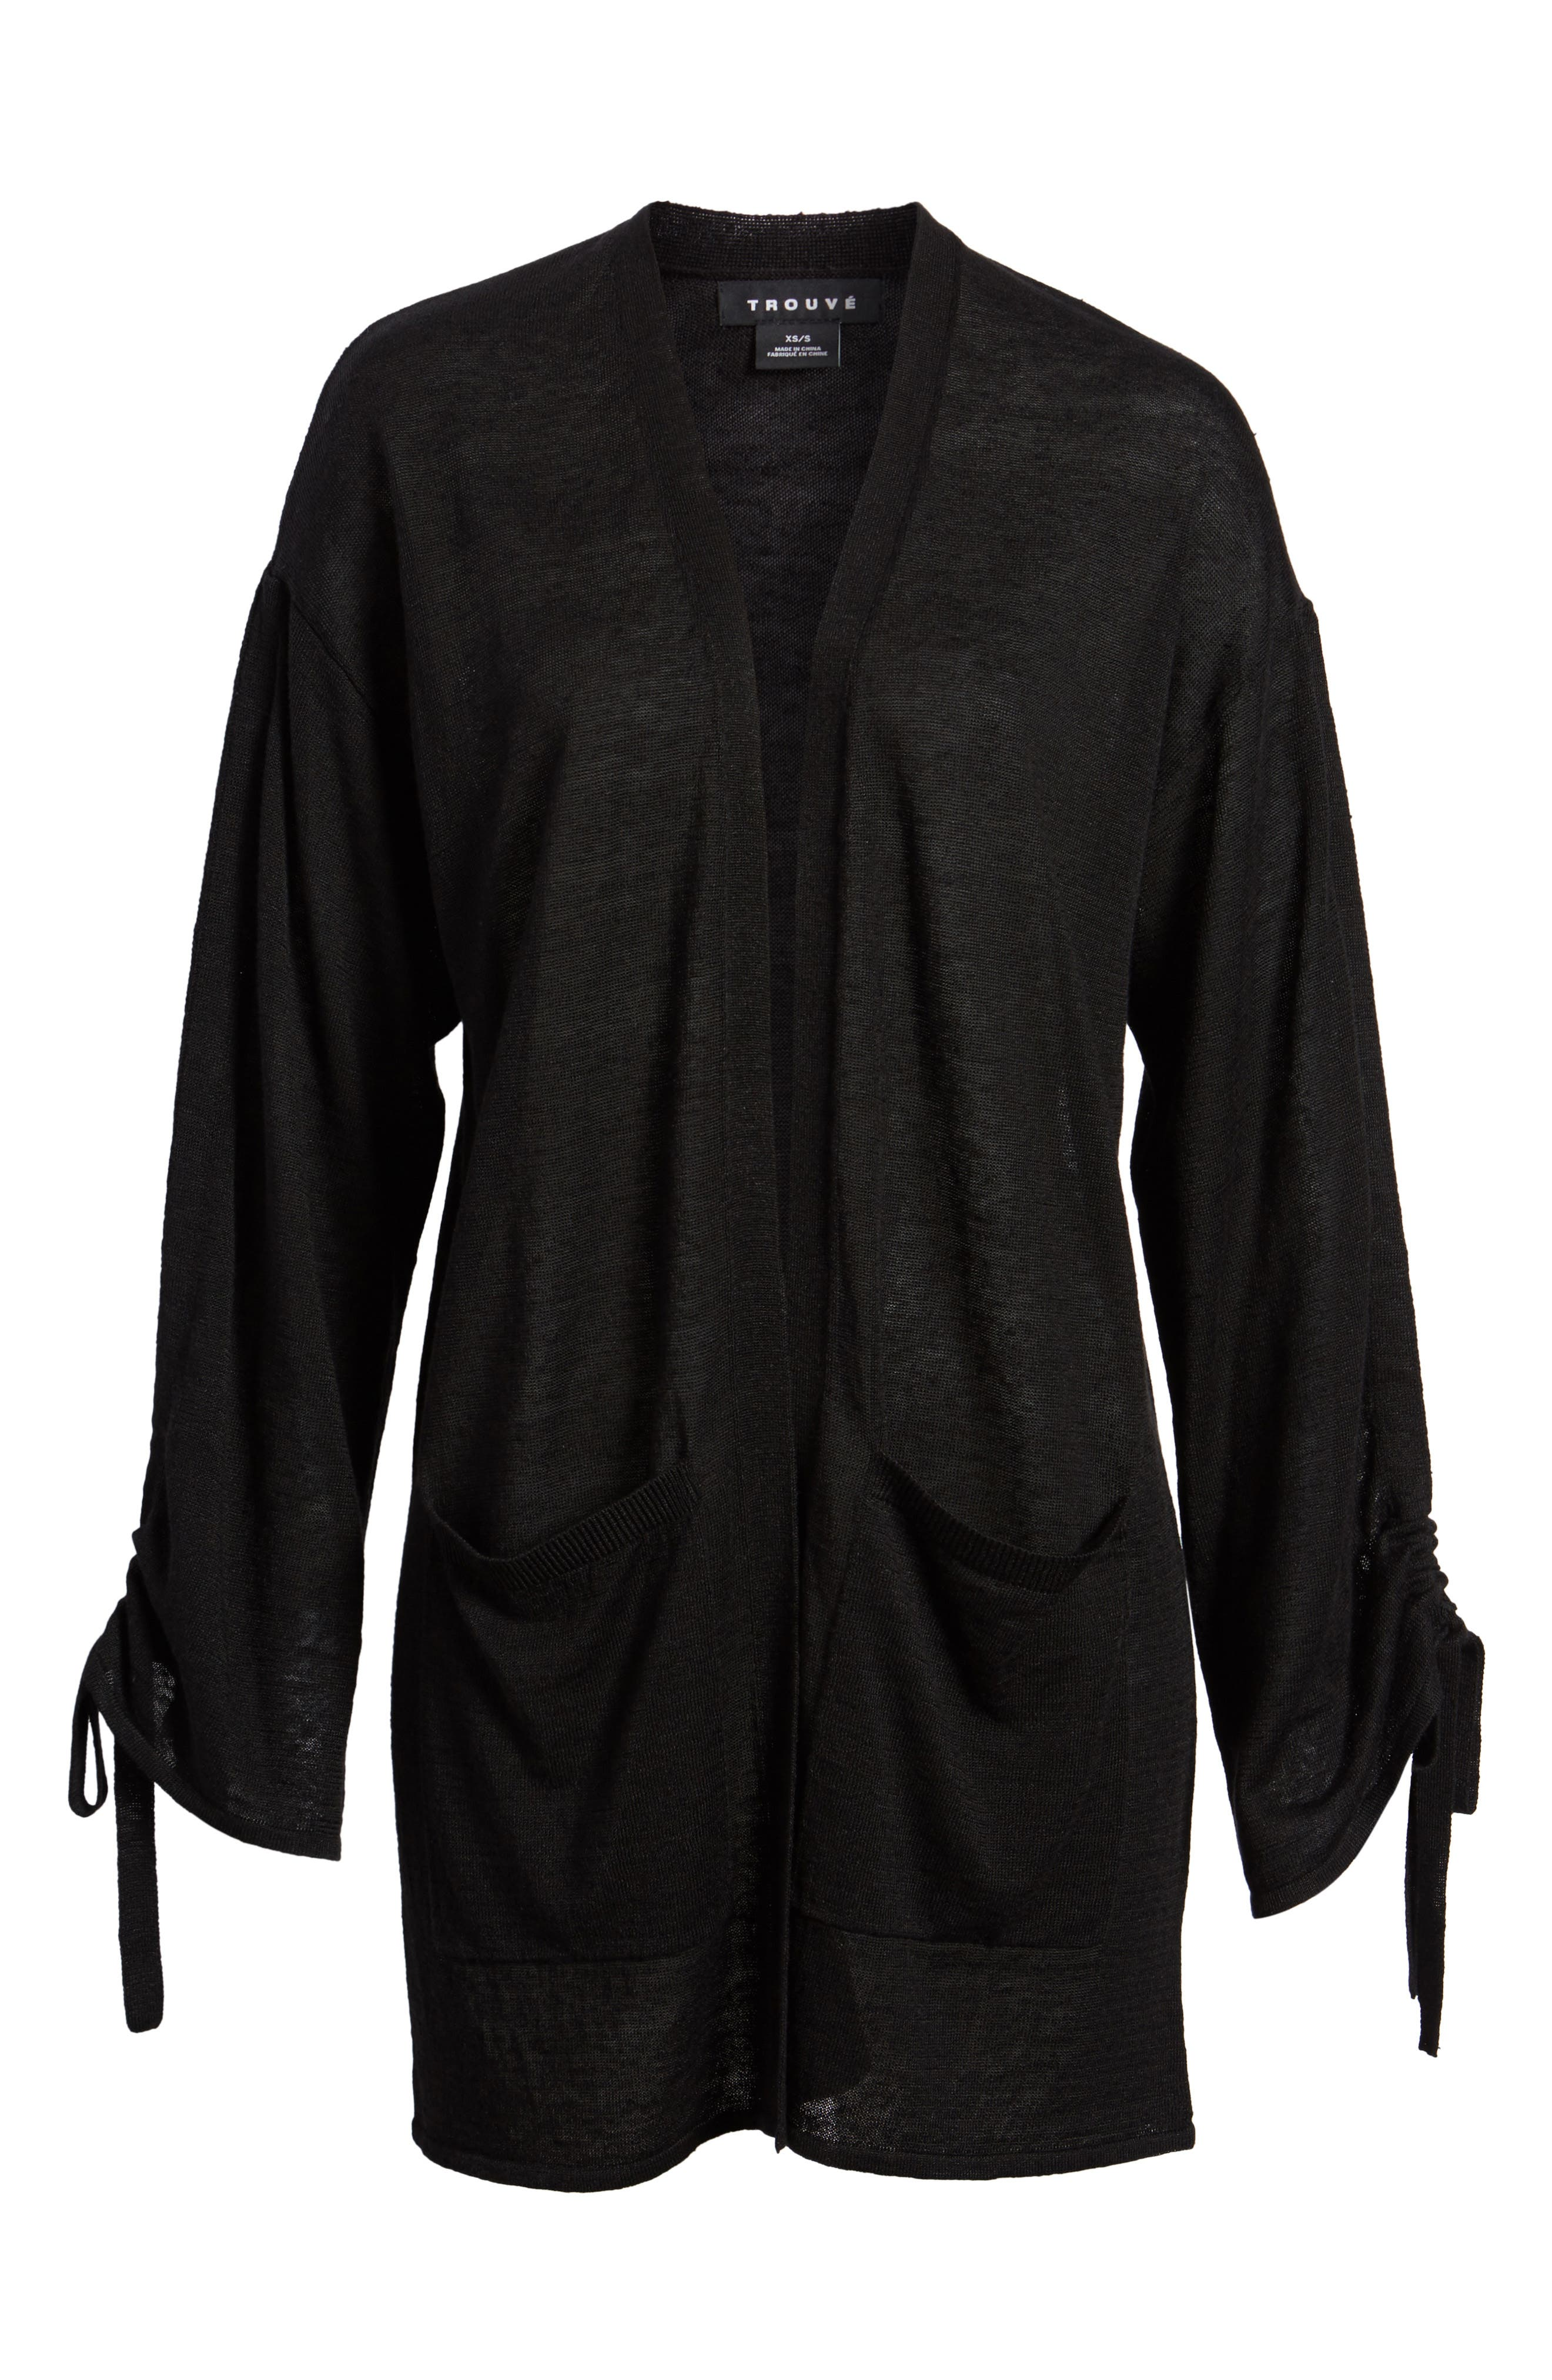 Ruched Sleeve Cardigan,                             Alternate thumbnail 6, color,                             001